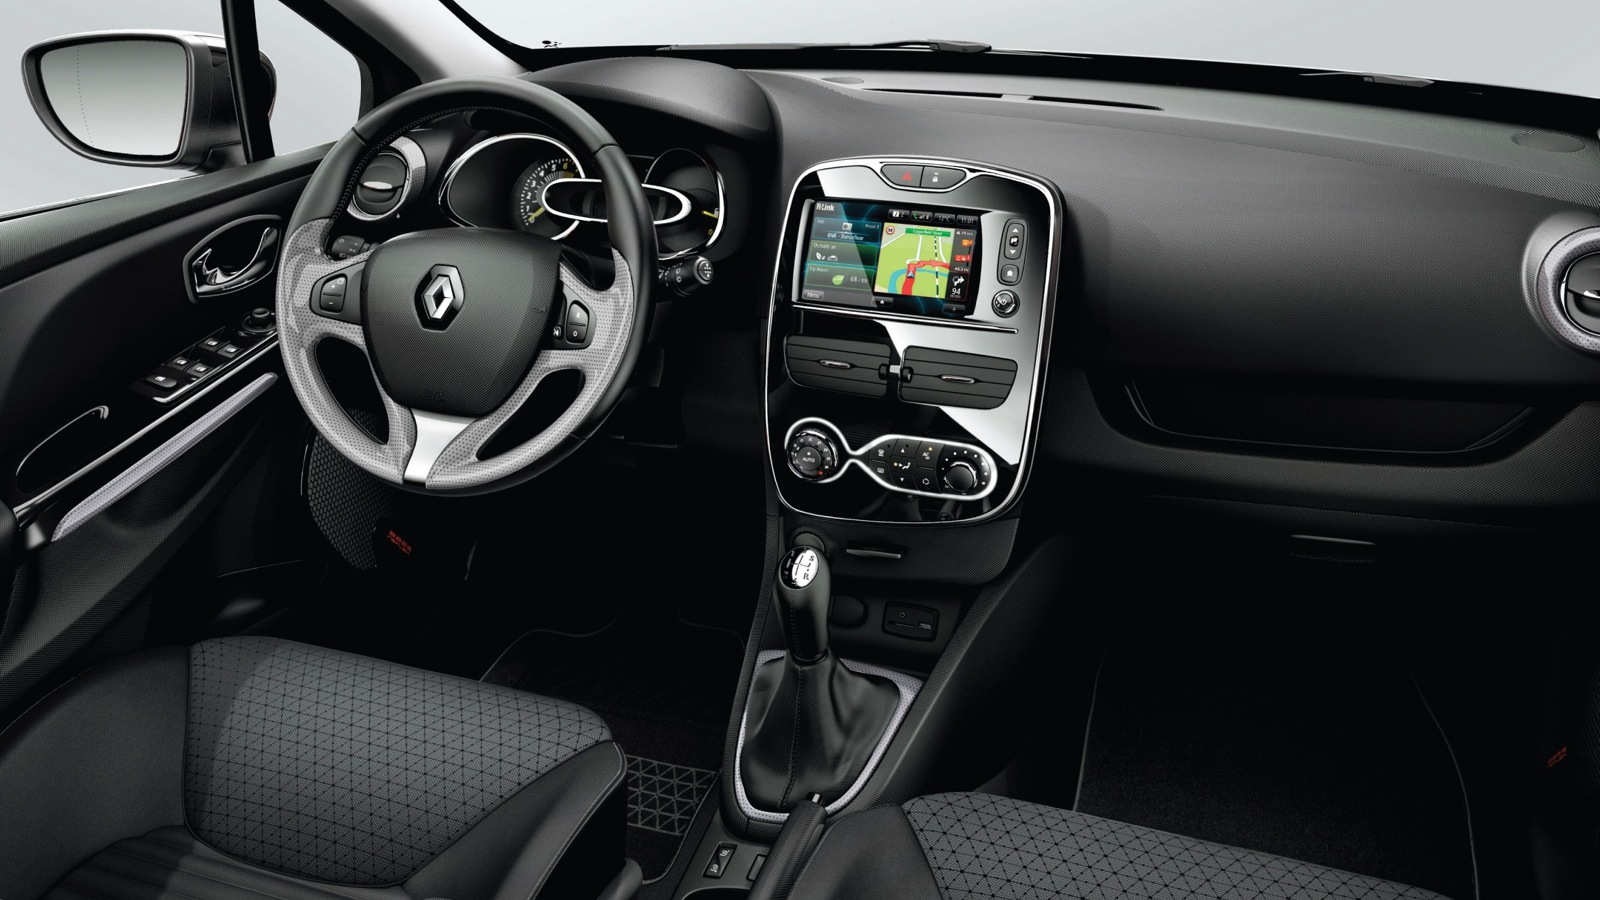 The fourth-generation Renault Clio